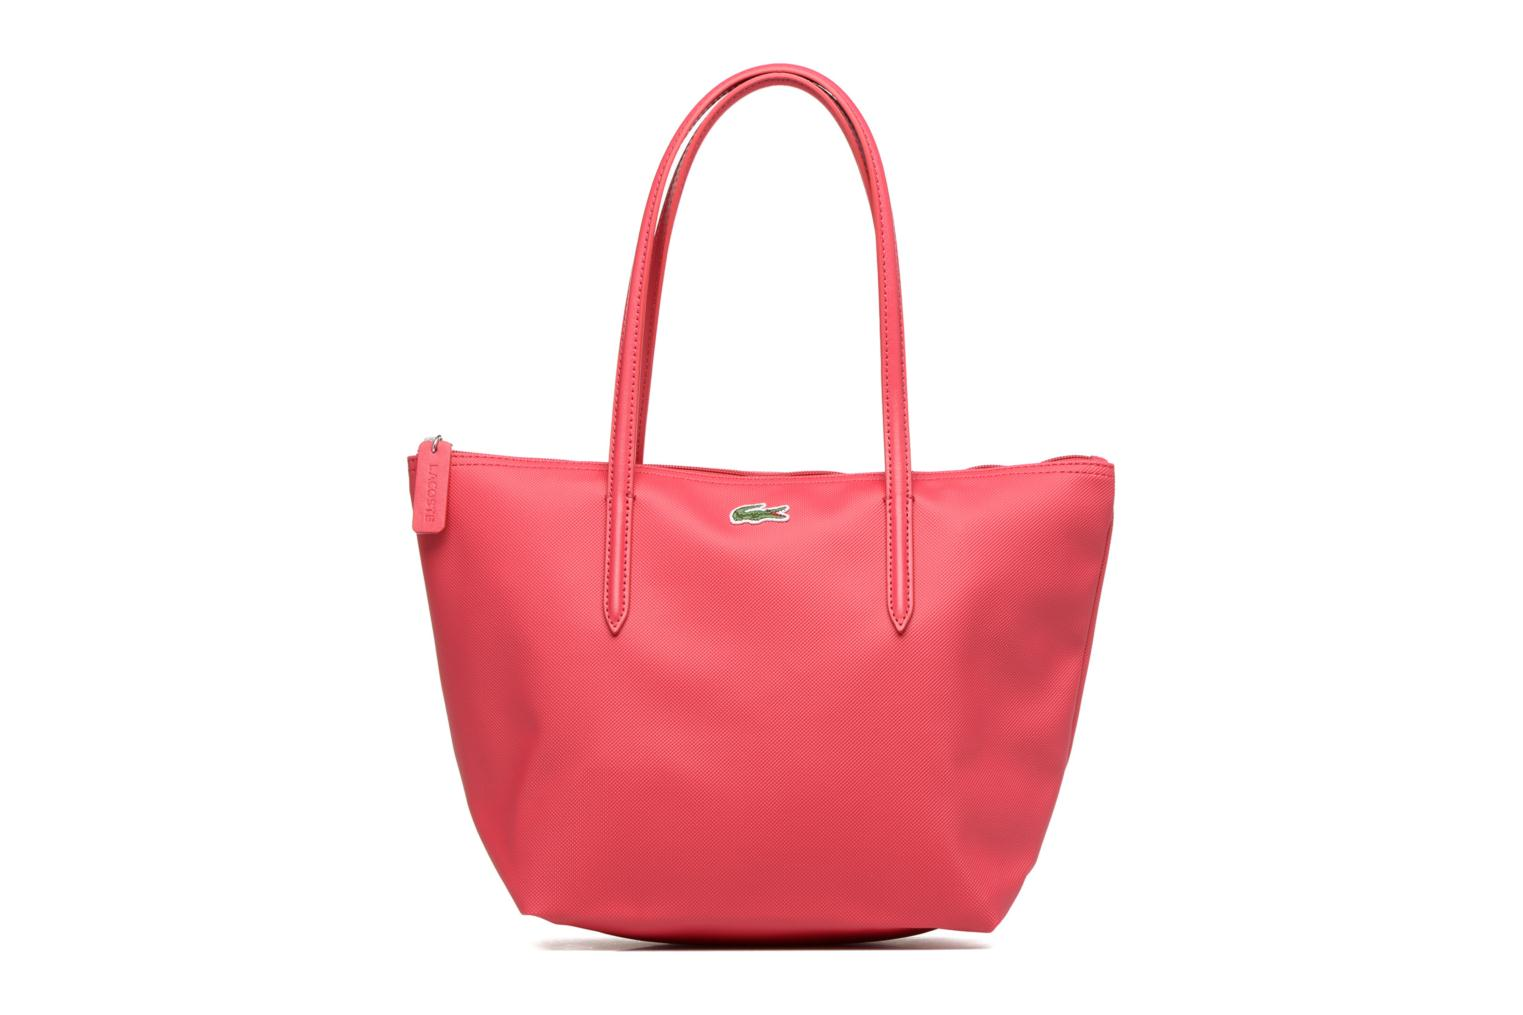 handtassen-l1212-shopping-bag-s-by-lacoste